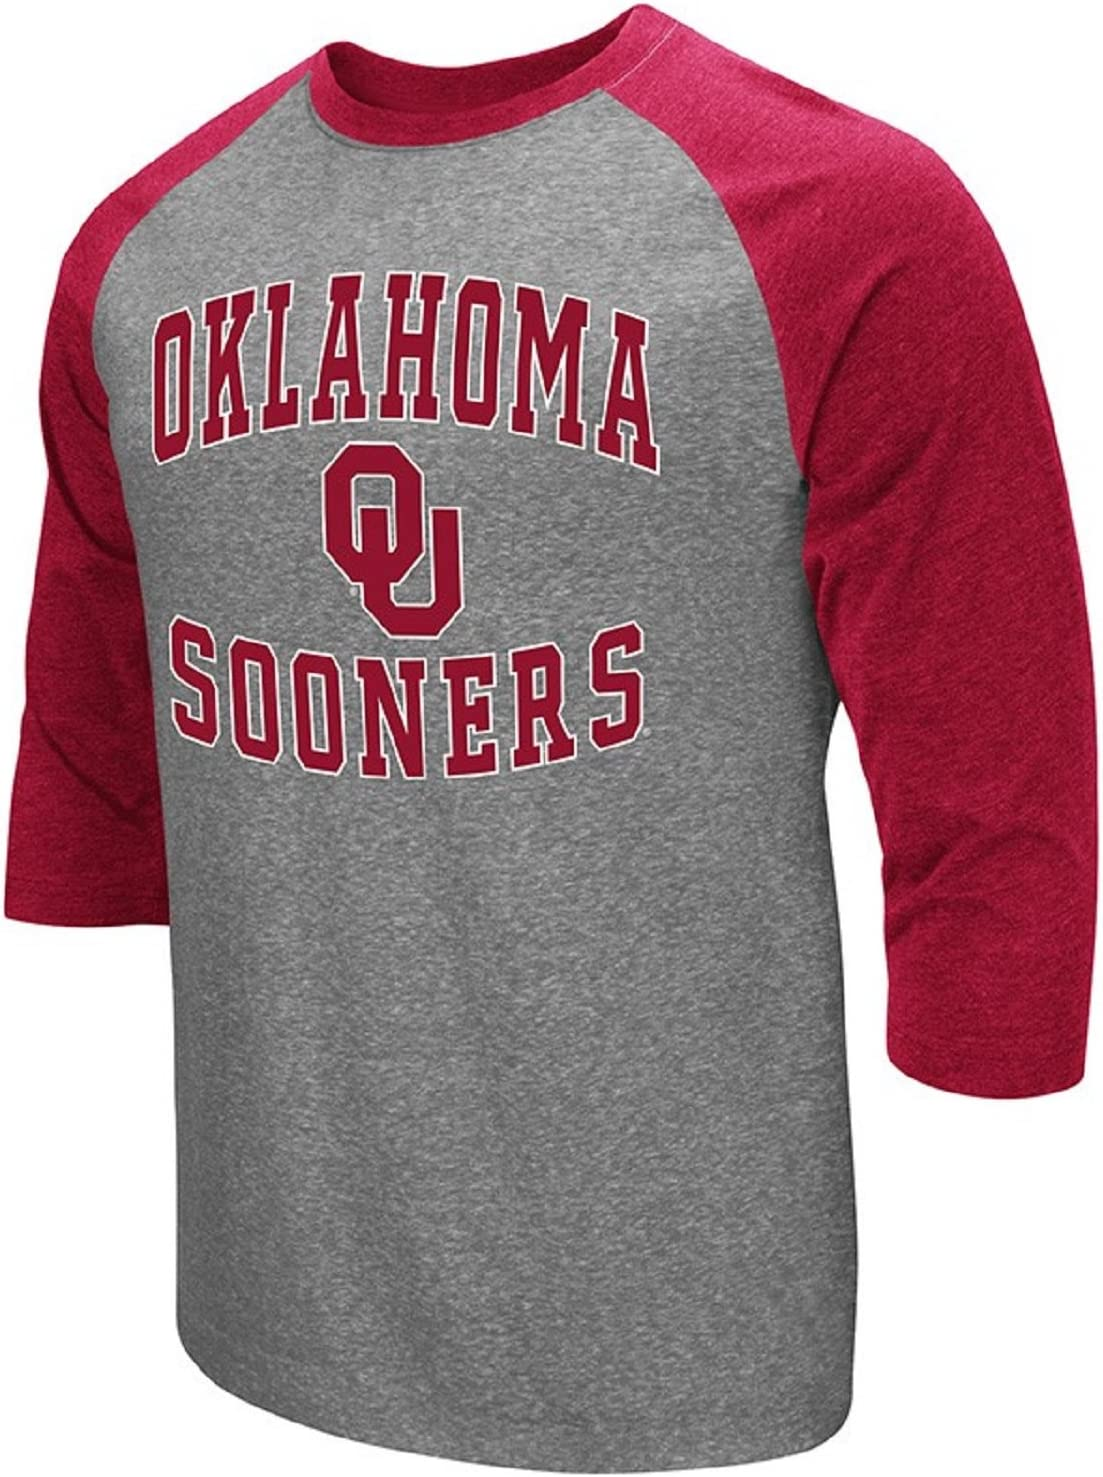 Colosseum Mens NCAA-Raglan-3//4 Sleeve-Heathered-Baseball T-Shirt